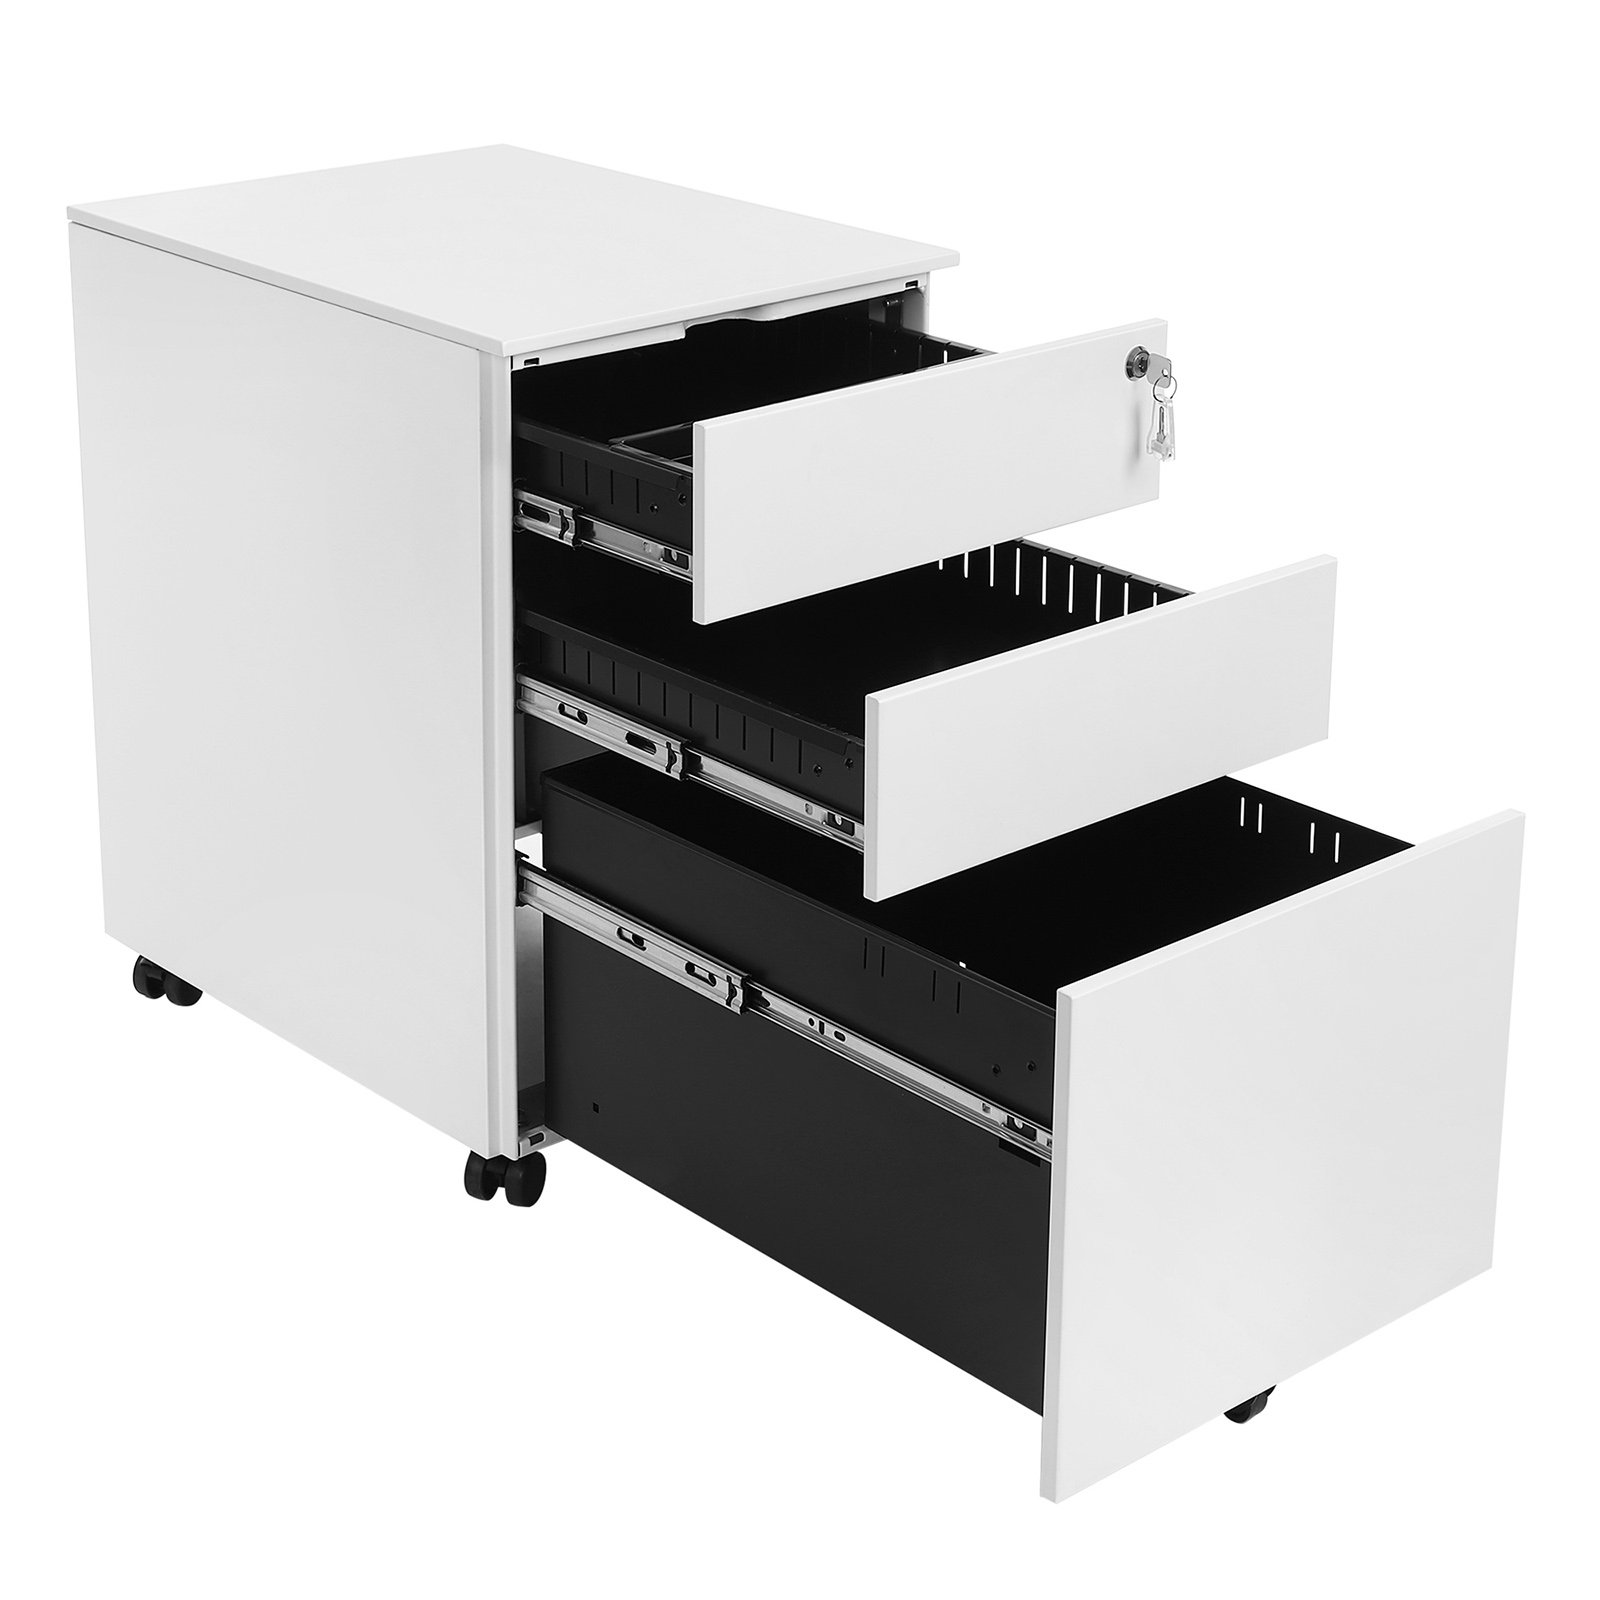 Mobile Filing Cabinet 15.75 W x 22 D Vertical Craft /& Hobby Essentials 62002 Metal 3 Craft Supply Storage with Locking Drawers in Black